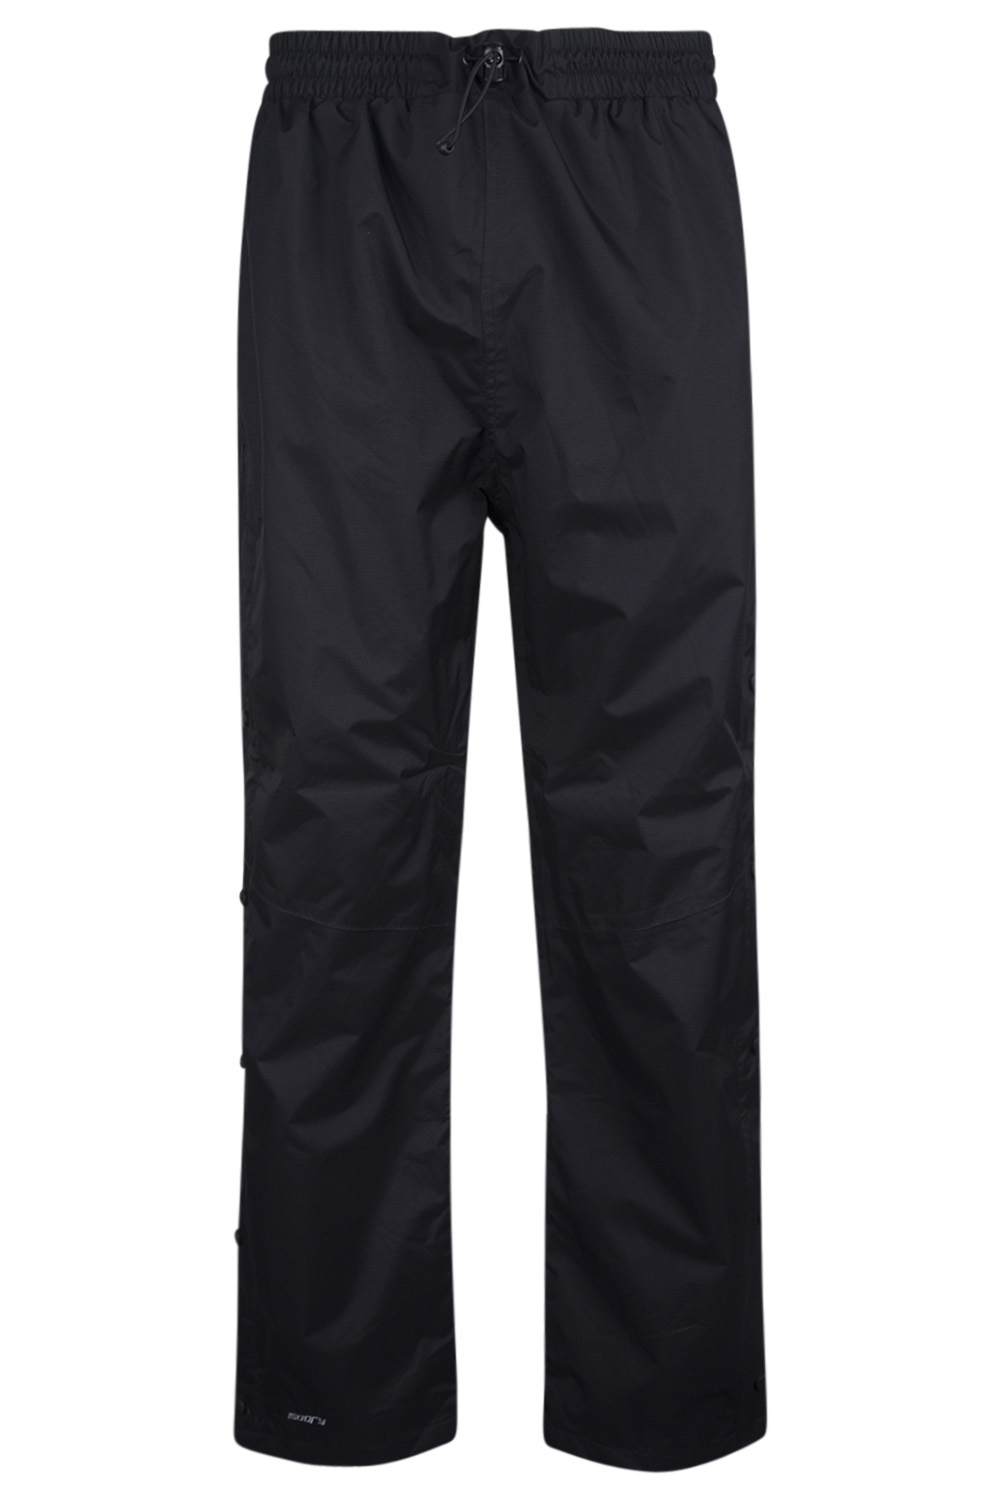 mens waterproof trousers | overtrousers | mountain warehouse gb RUYICBB